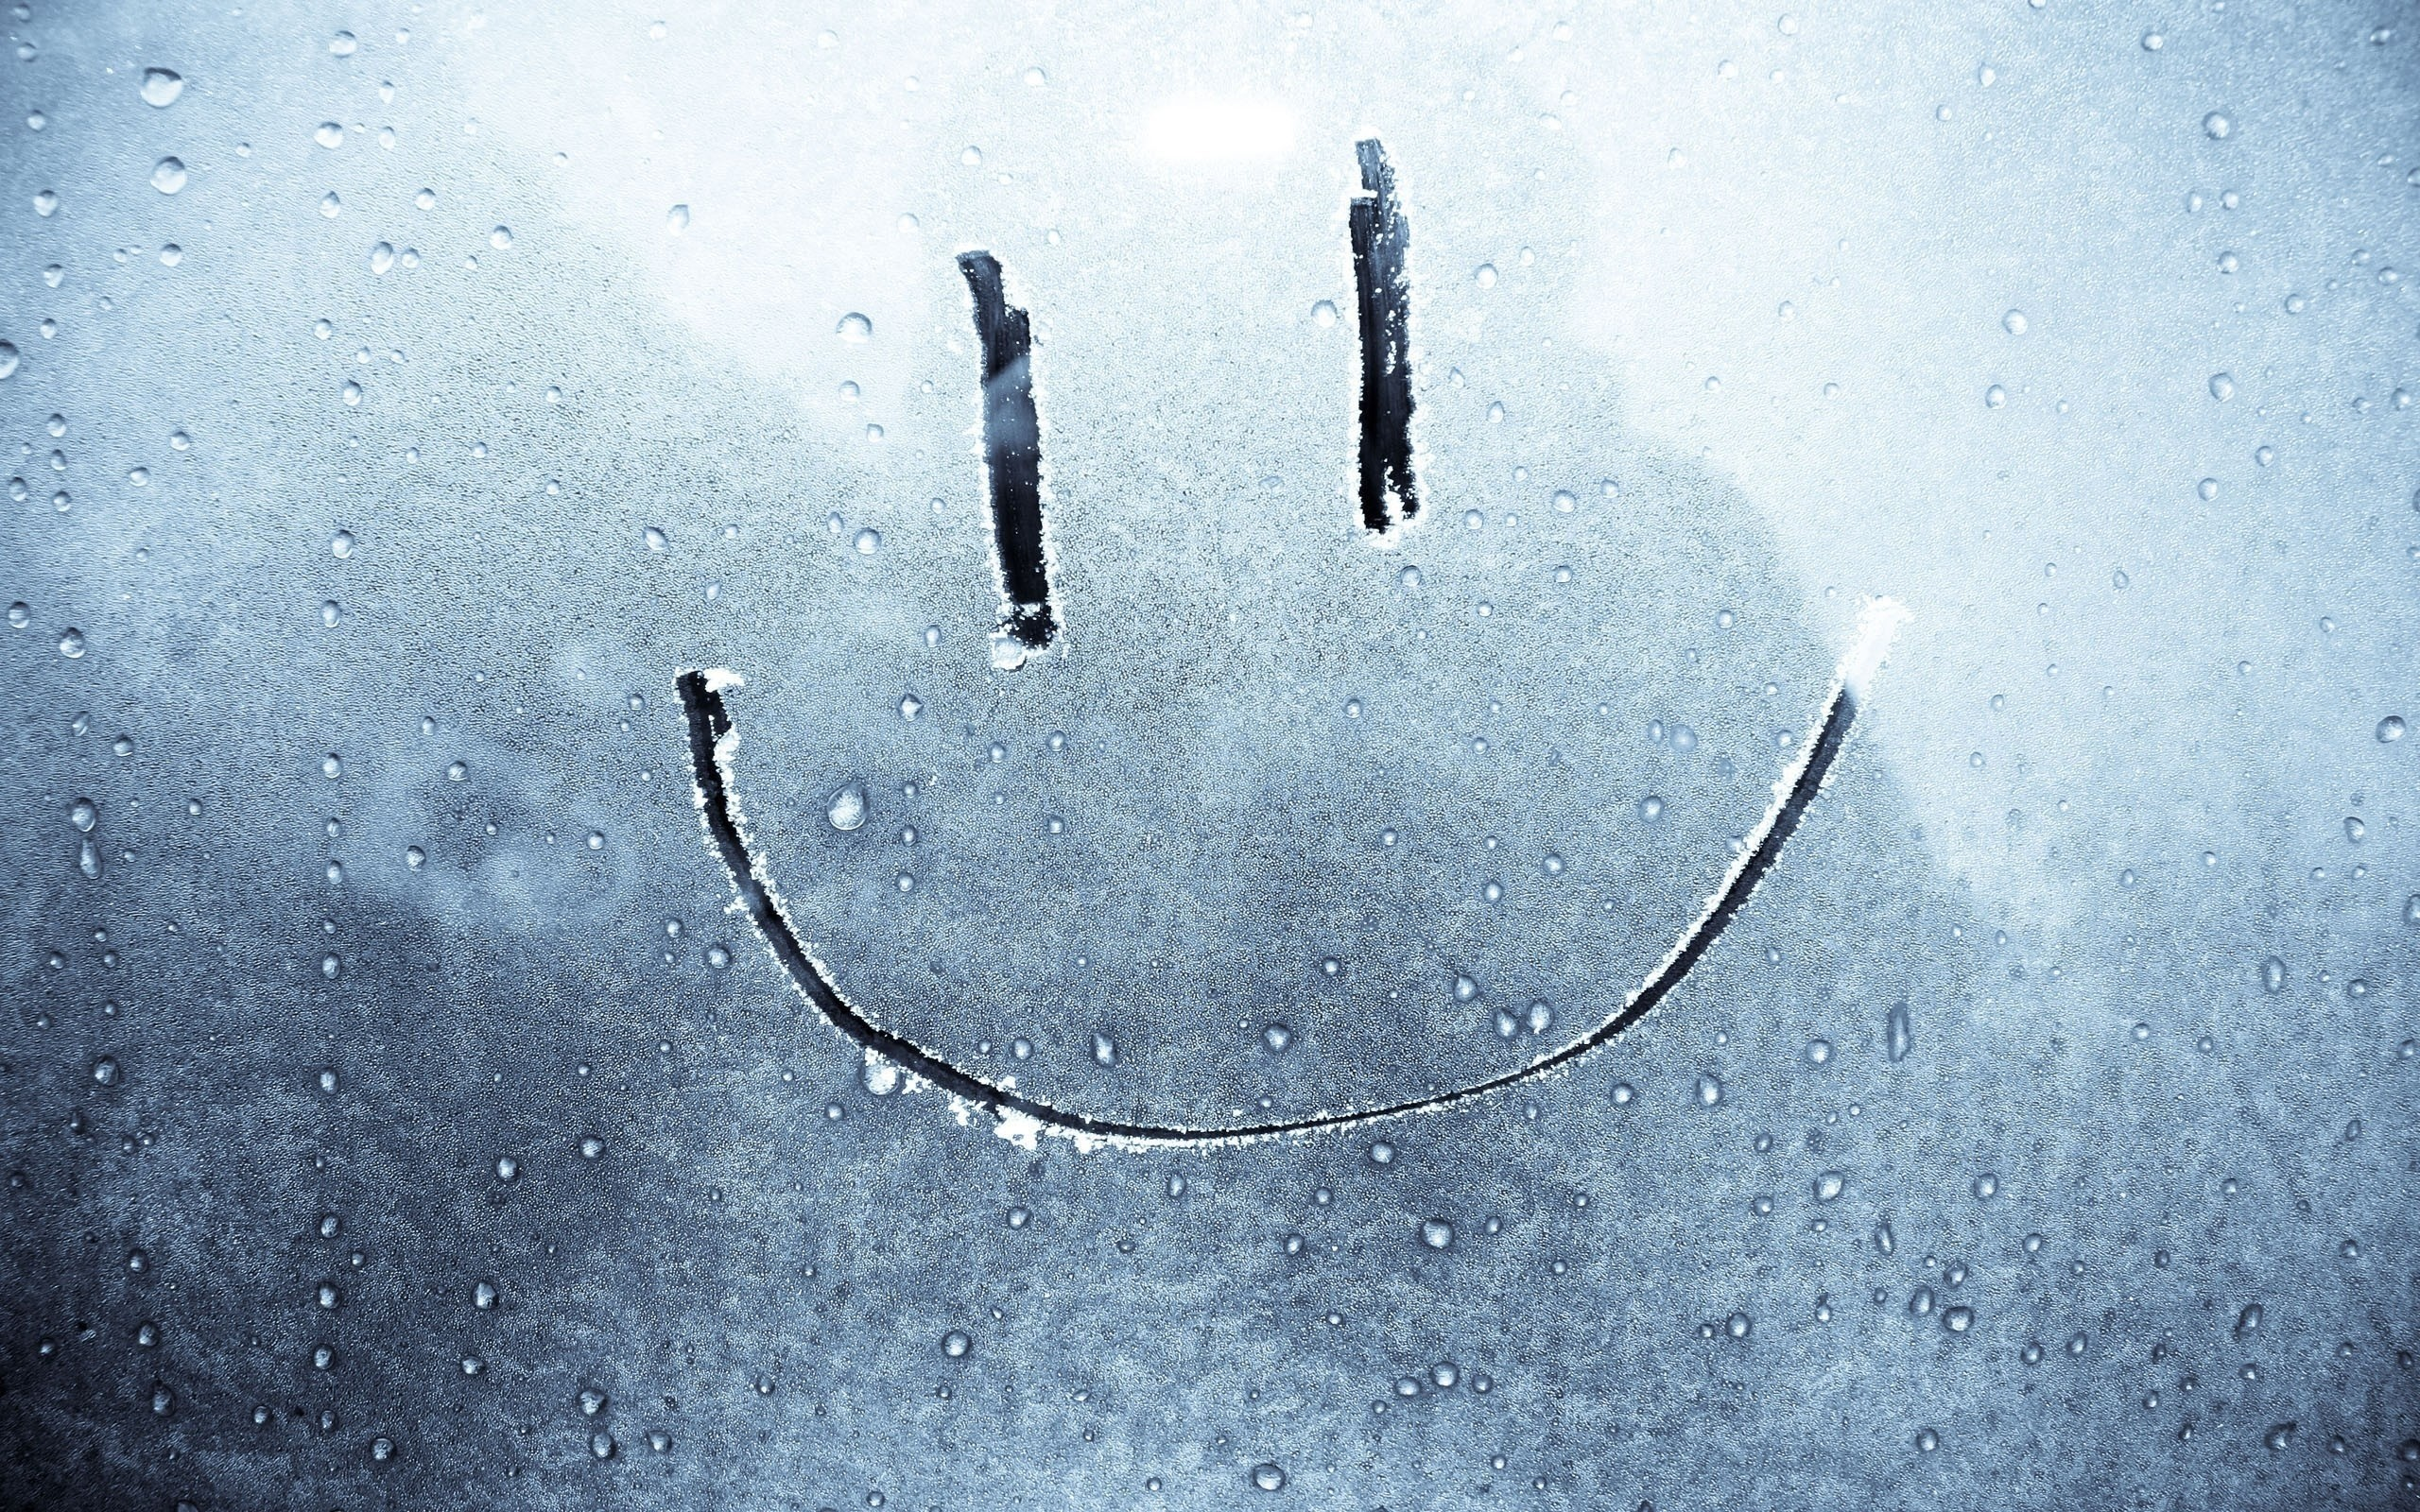 Smile wallpaper 2560x1600 full hdq smile pictures and wallpapers showcase smile image wallpapers wallpapers voltagebd Choice Image